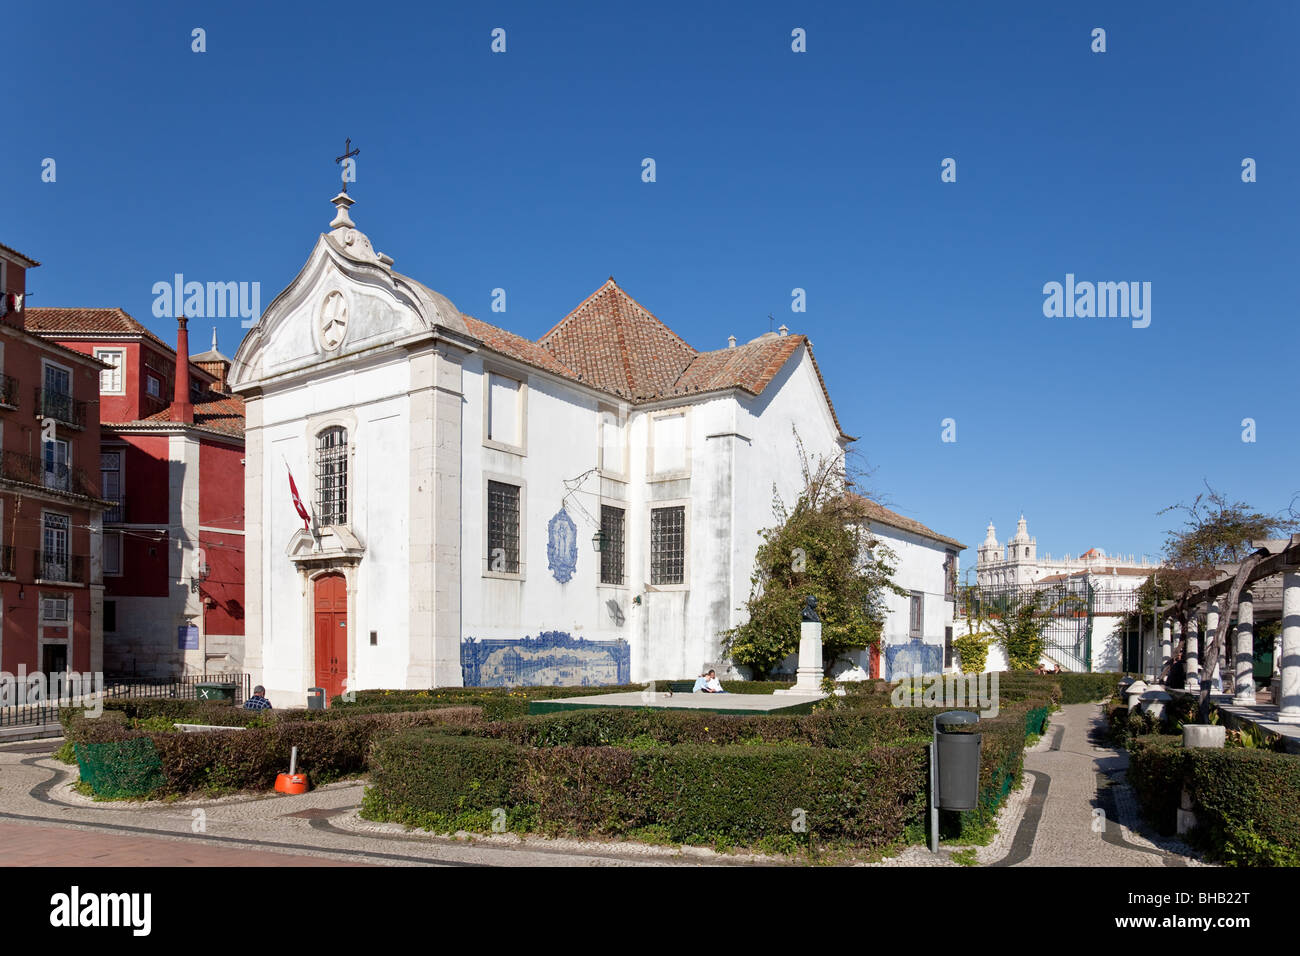 Santa Luzia Church and Miradouro de Santa Luzia (belvedere / terrace) in Alfama. Lisbon, Portugal. Stock Photo